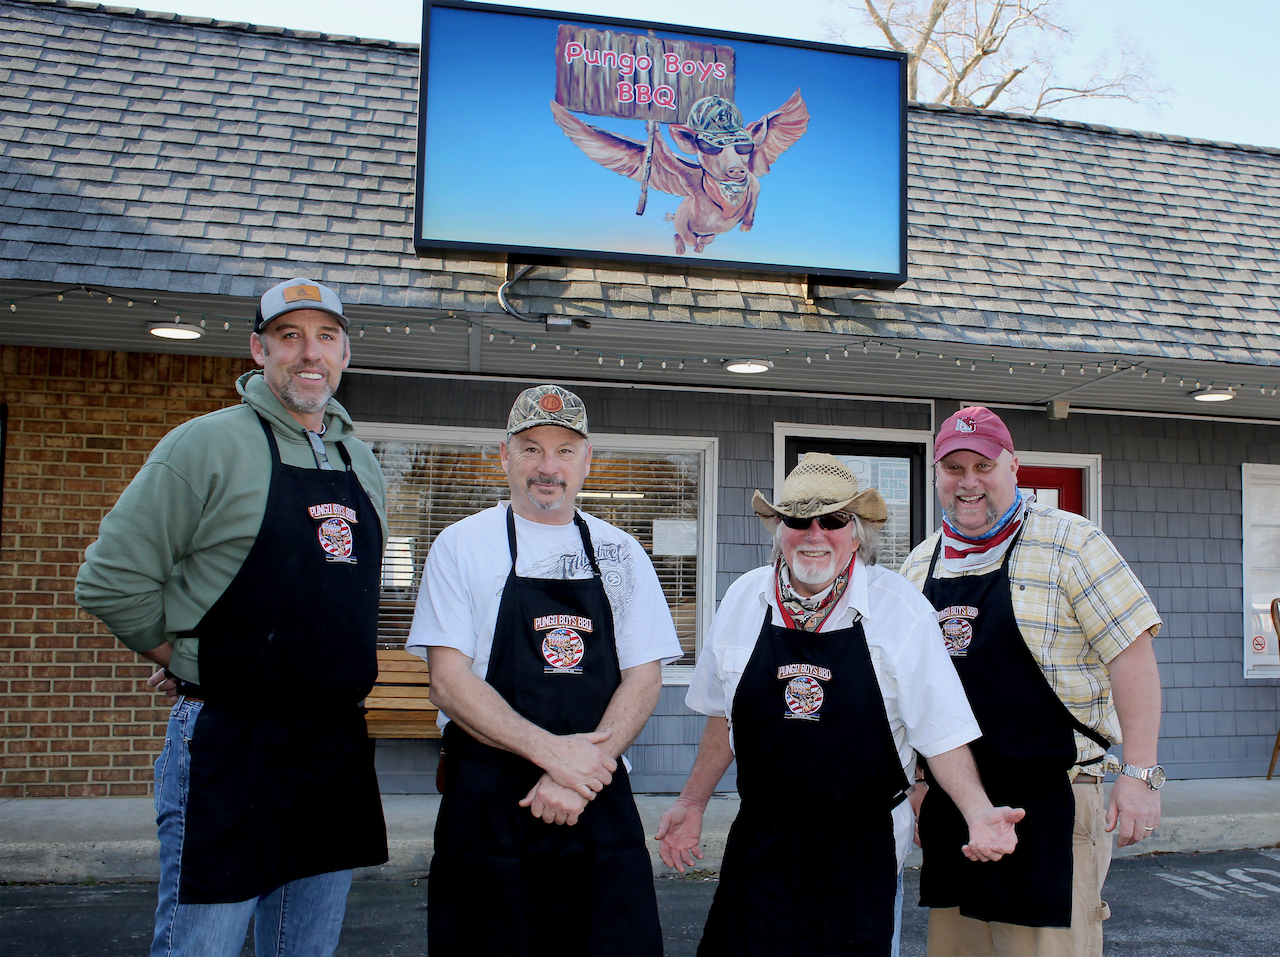 Eats: Pungo Boys bring BBQ back 'downtown'